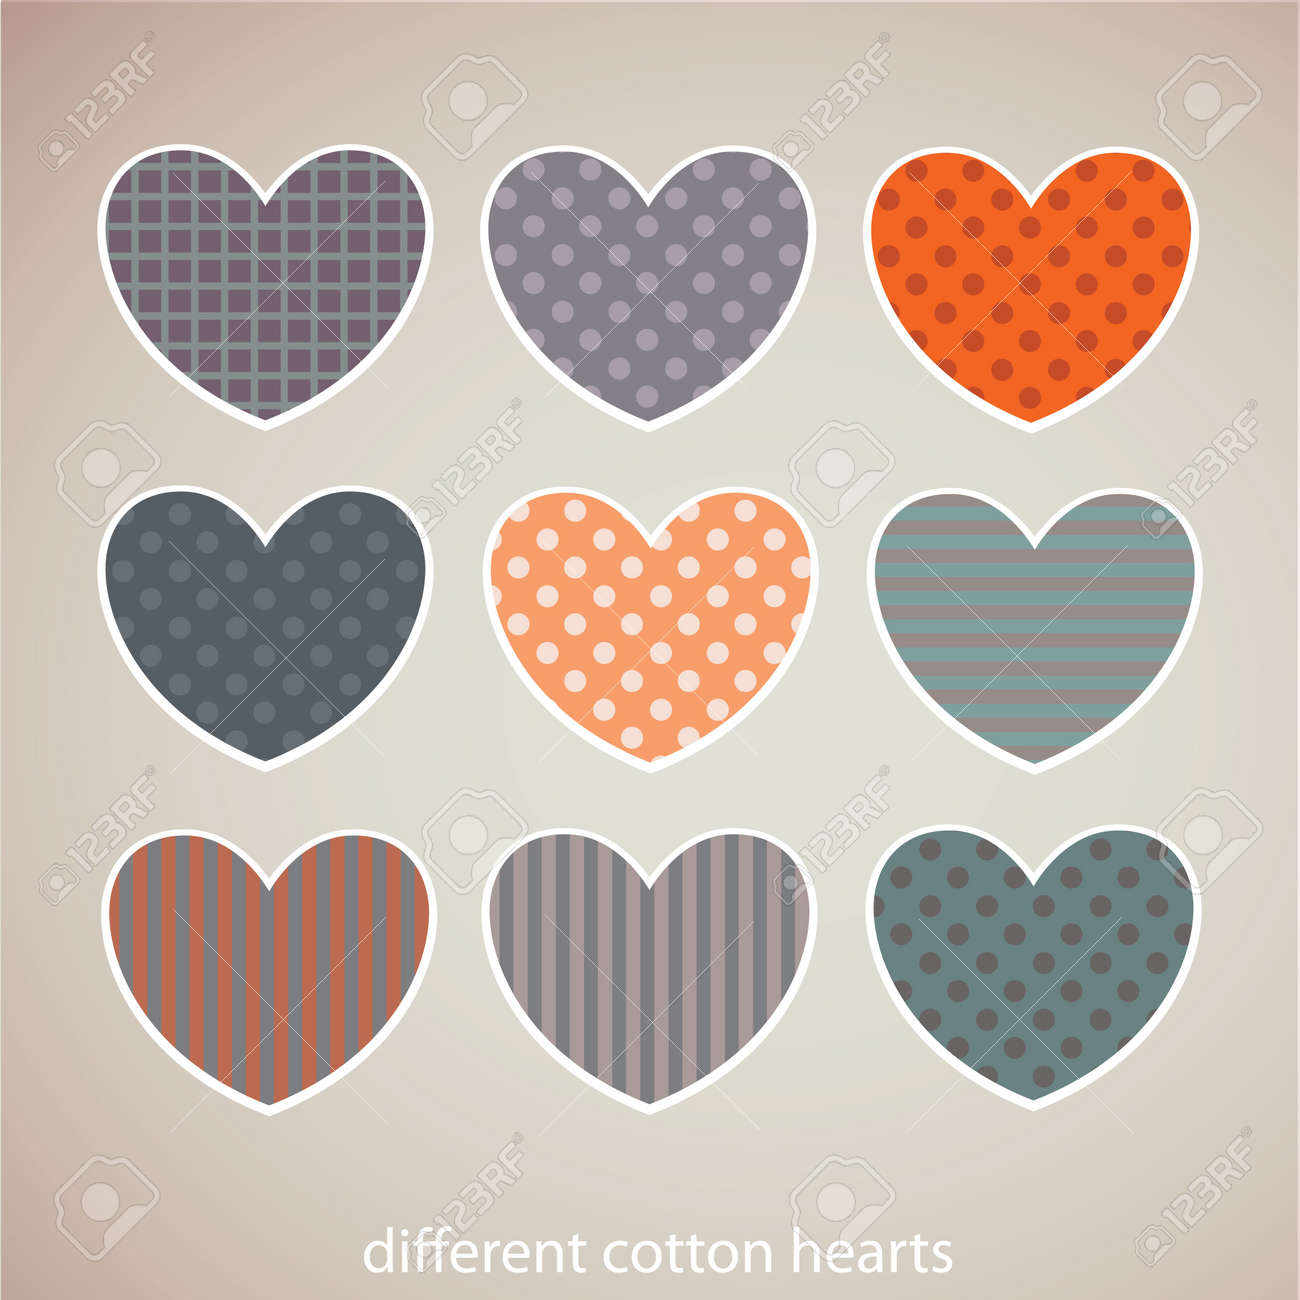 Cotton hearts on white background Stock Vector - 16844210